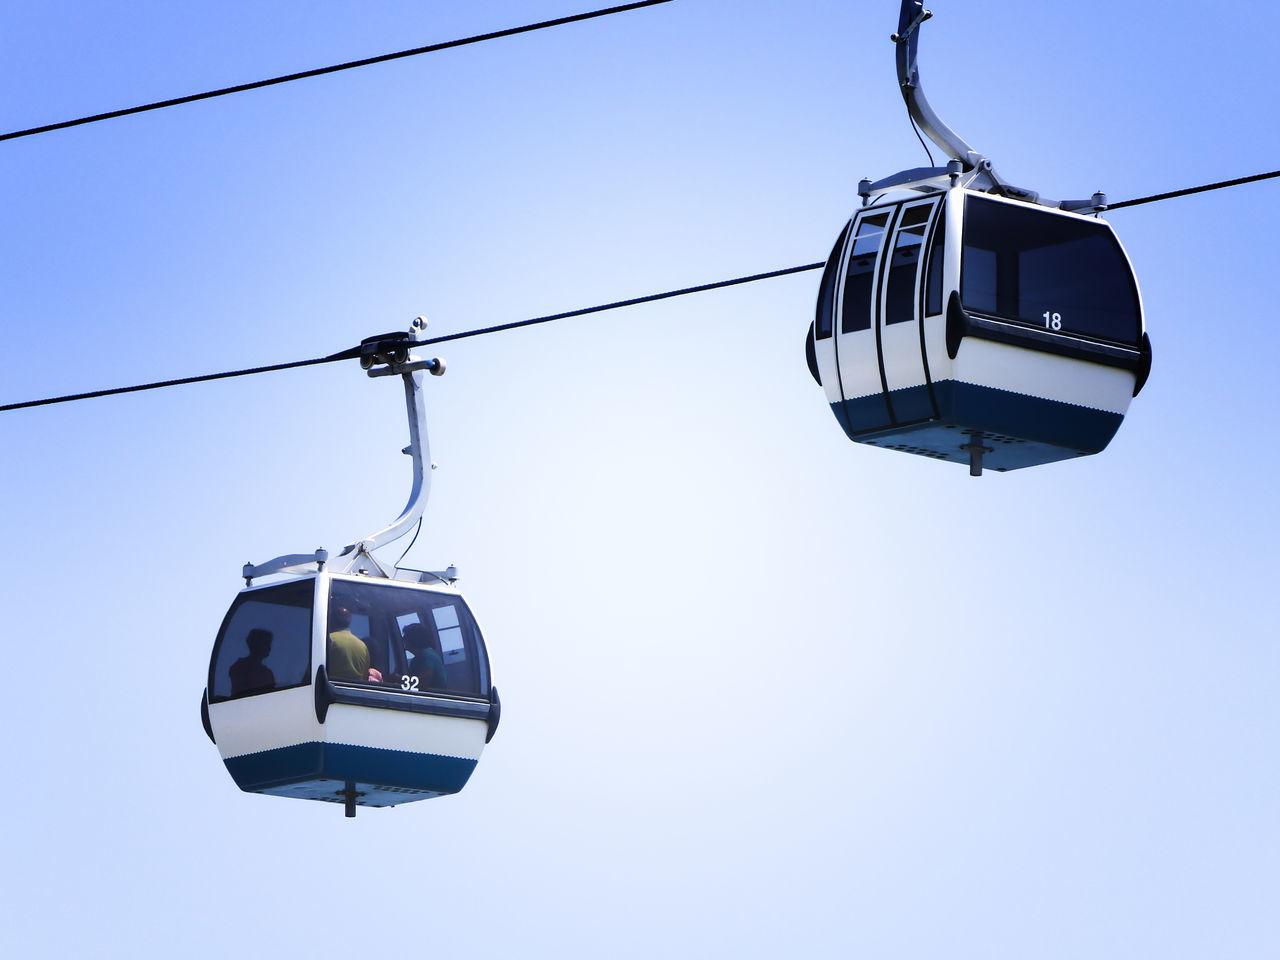 LOW ANGLE VIEW OF Cable Car Against CLEAR BLUE SKY